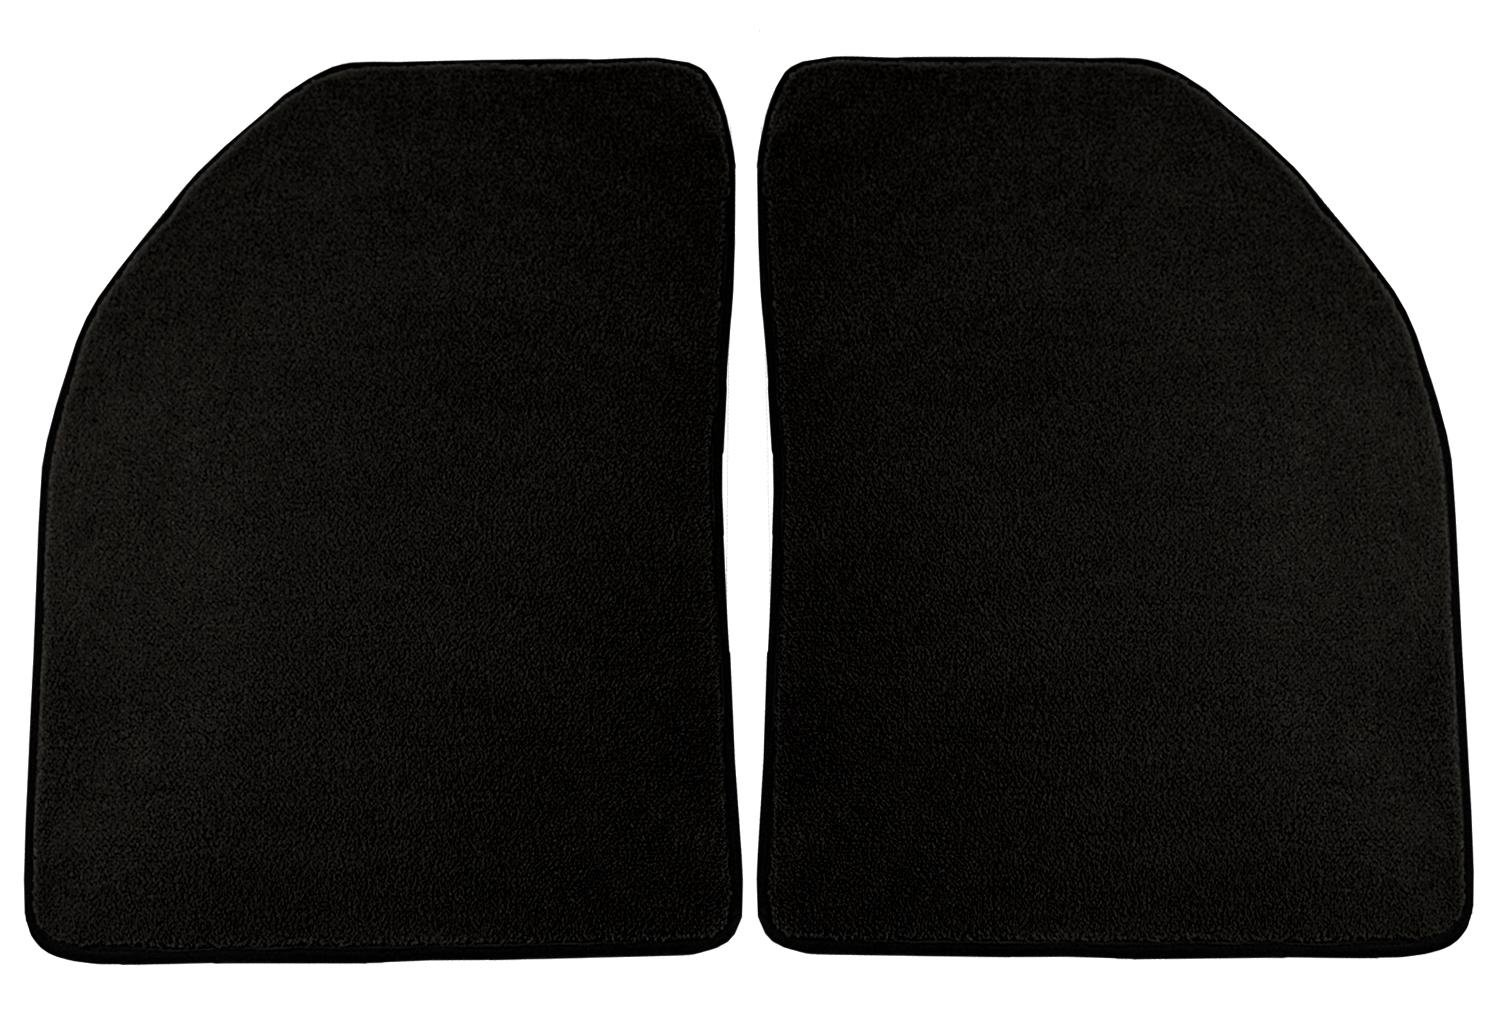 Black Coverking Custom Fit Rear Floor Mats for Select Bronco Models Nylon Carpet